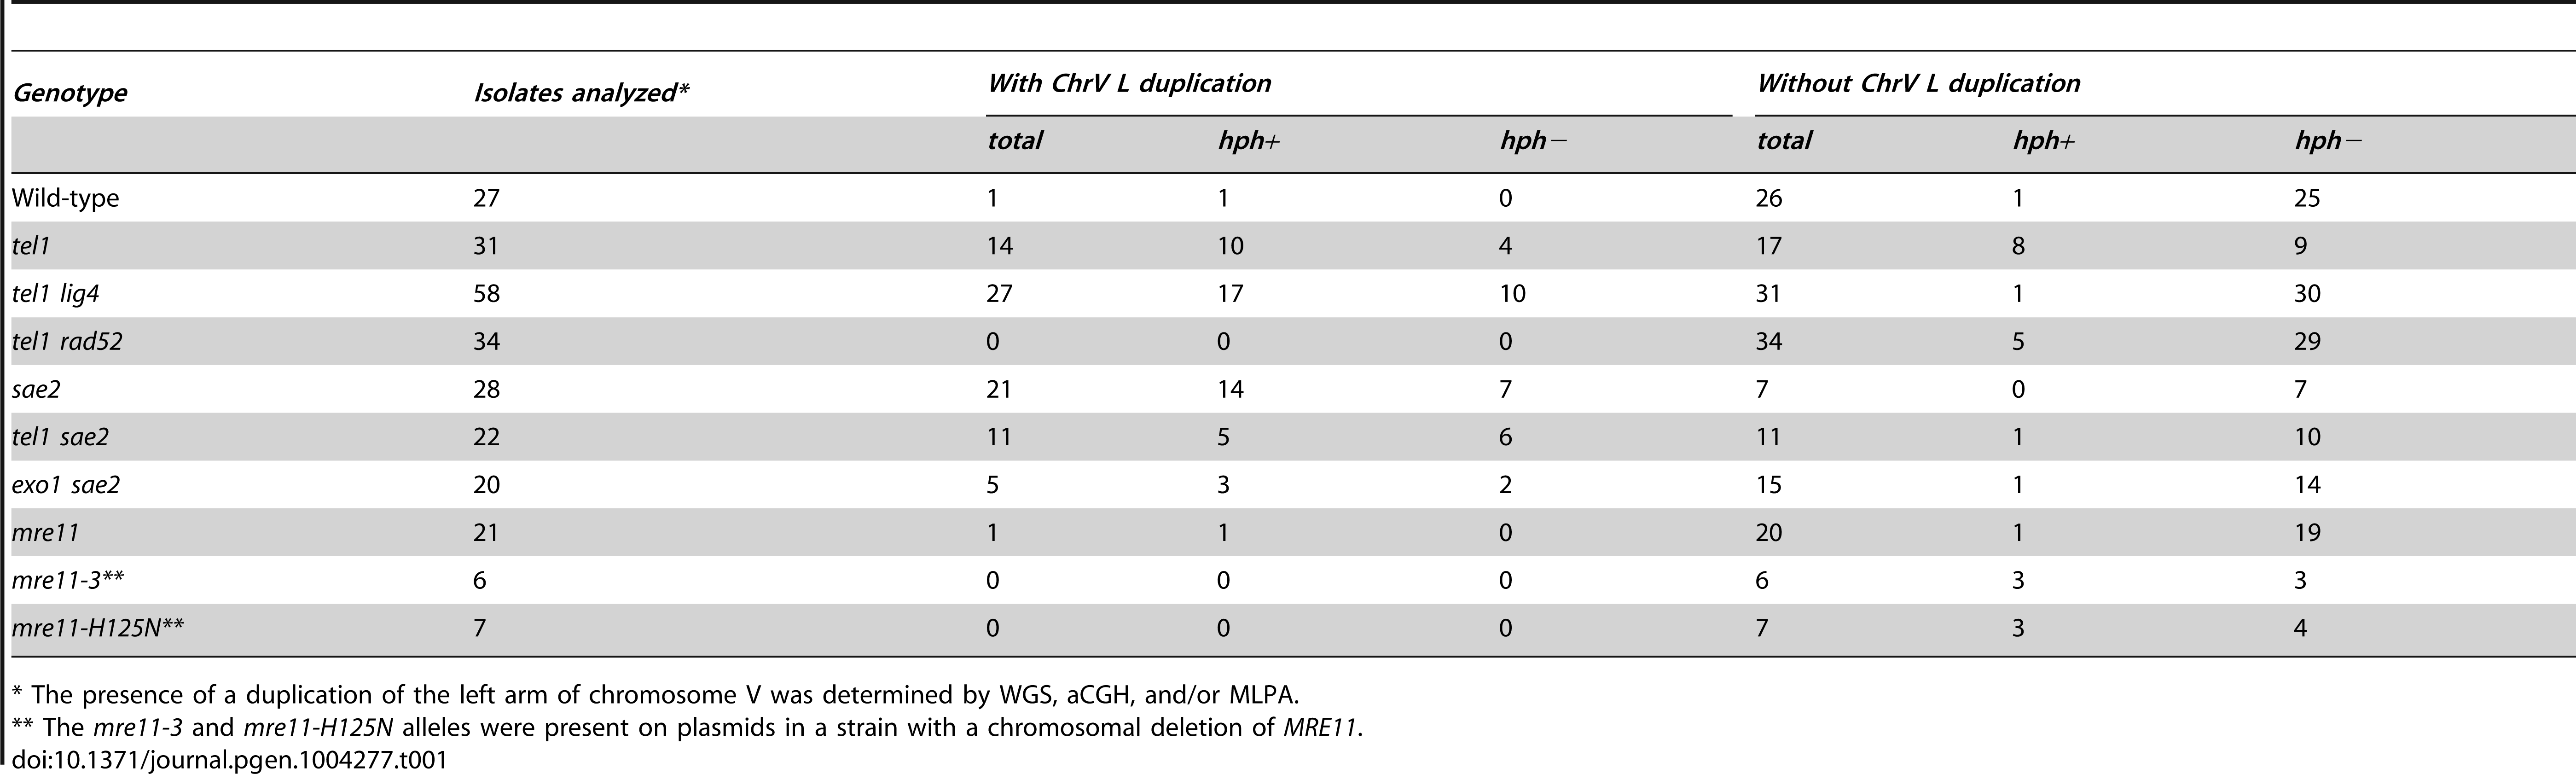 Count of GCR events with and without duplication of the left arm of chromosome V from the uGCR assay.